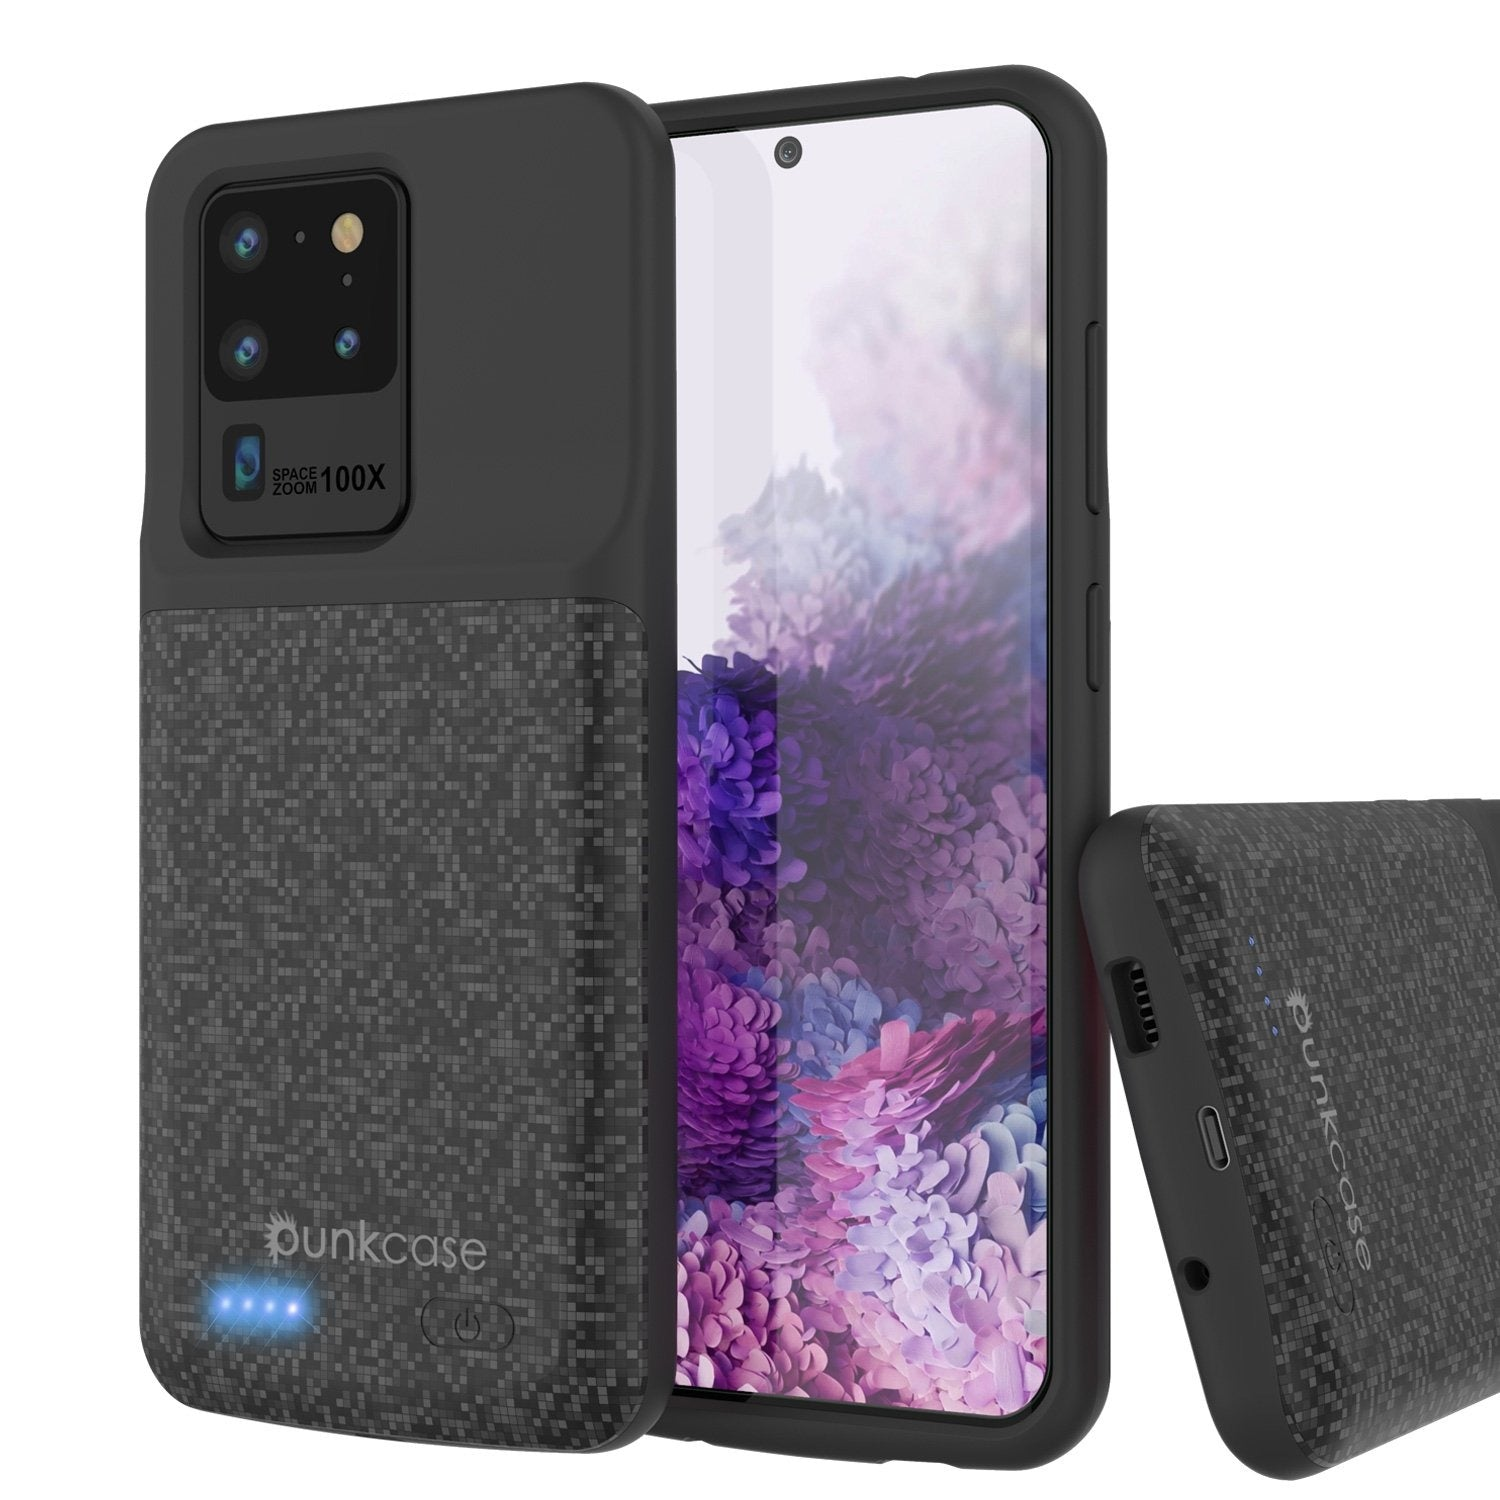 PunkJuice S20 Ultra Battery Case Patterned Black - Fast Charging Power Juice Bank with 6000mAh